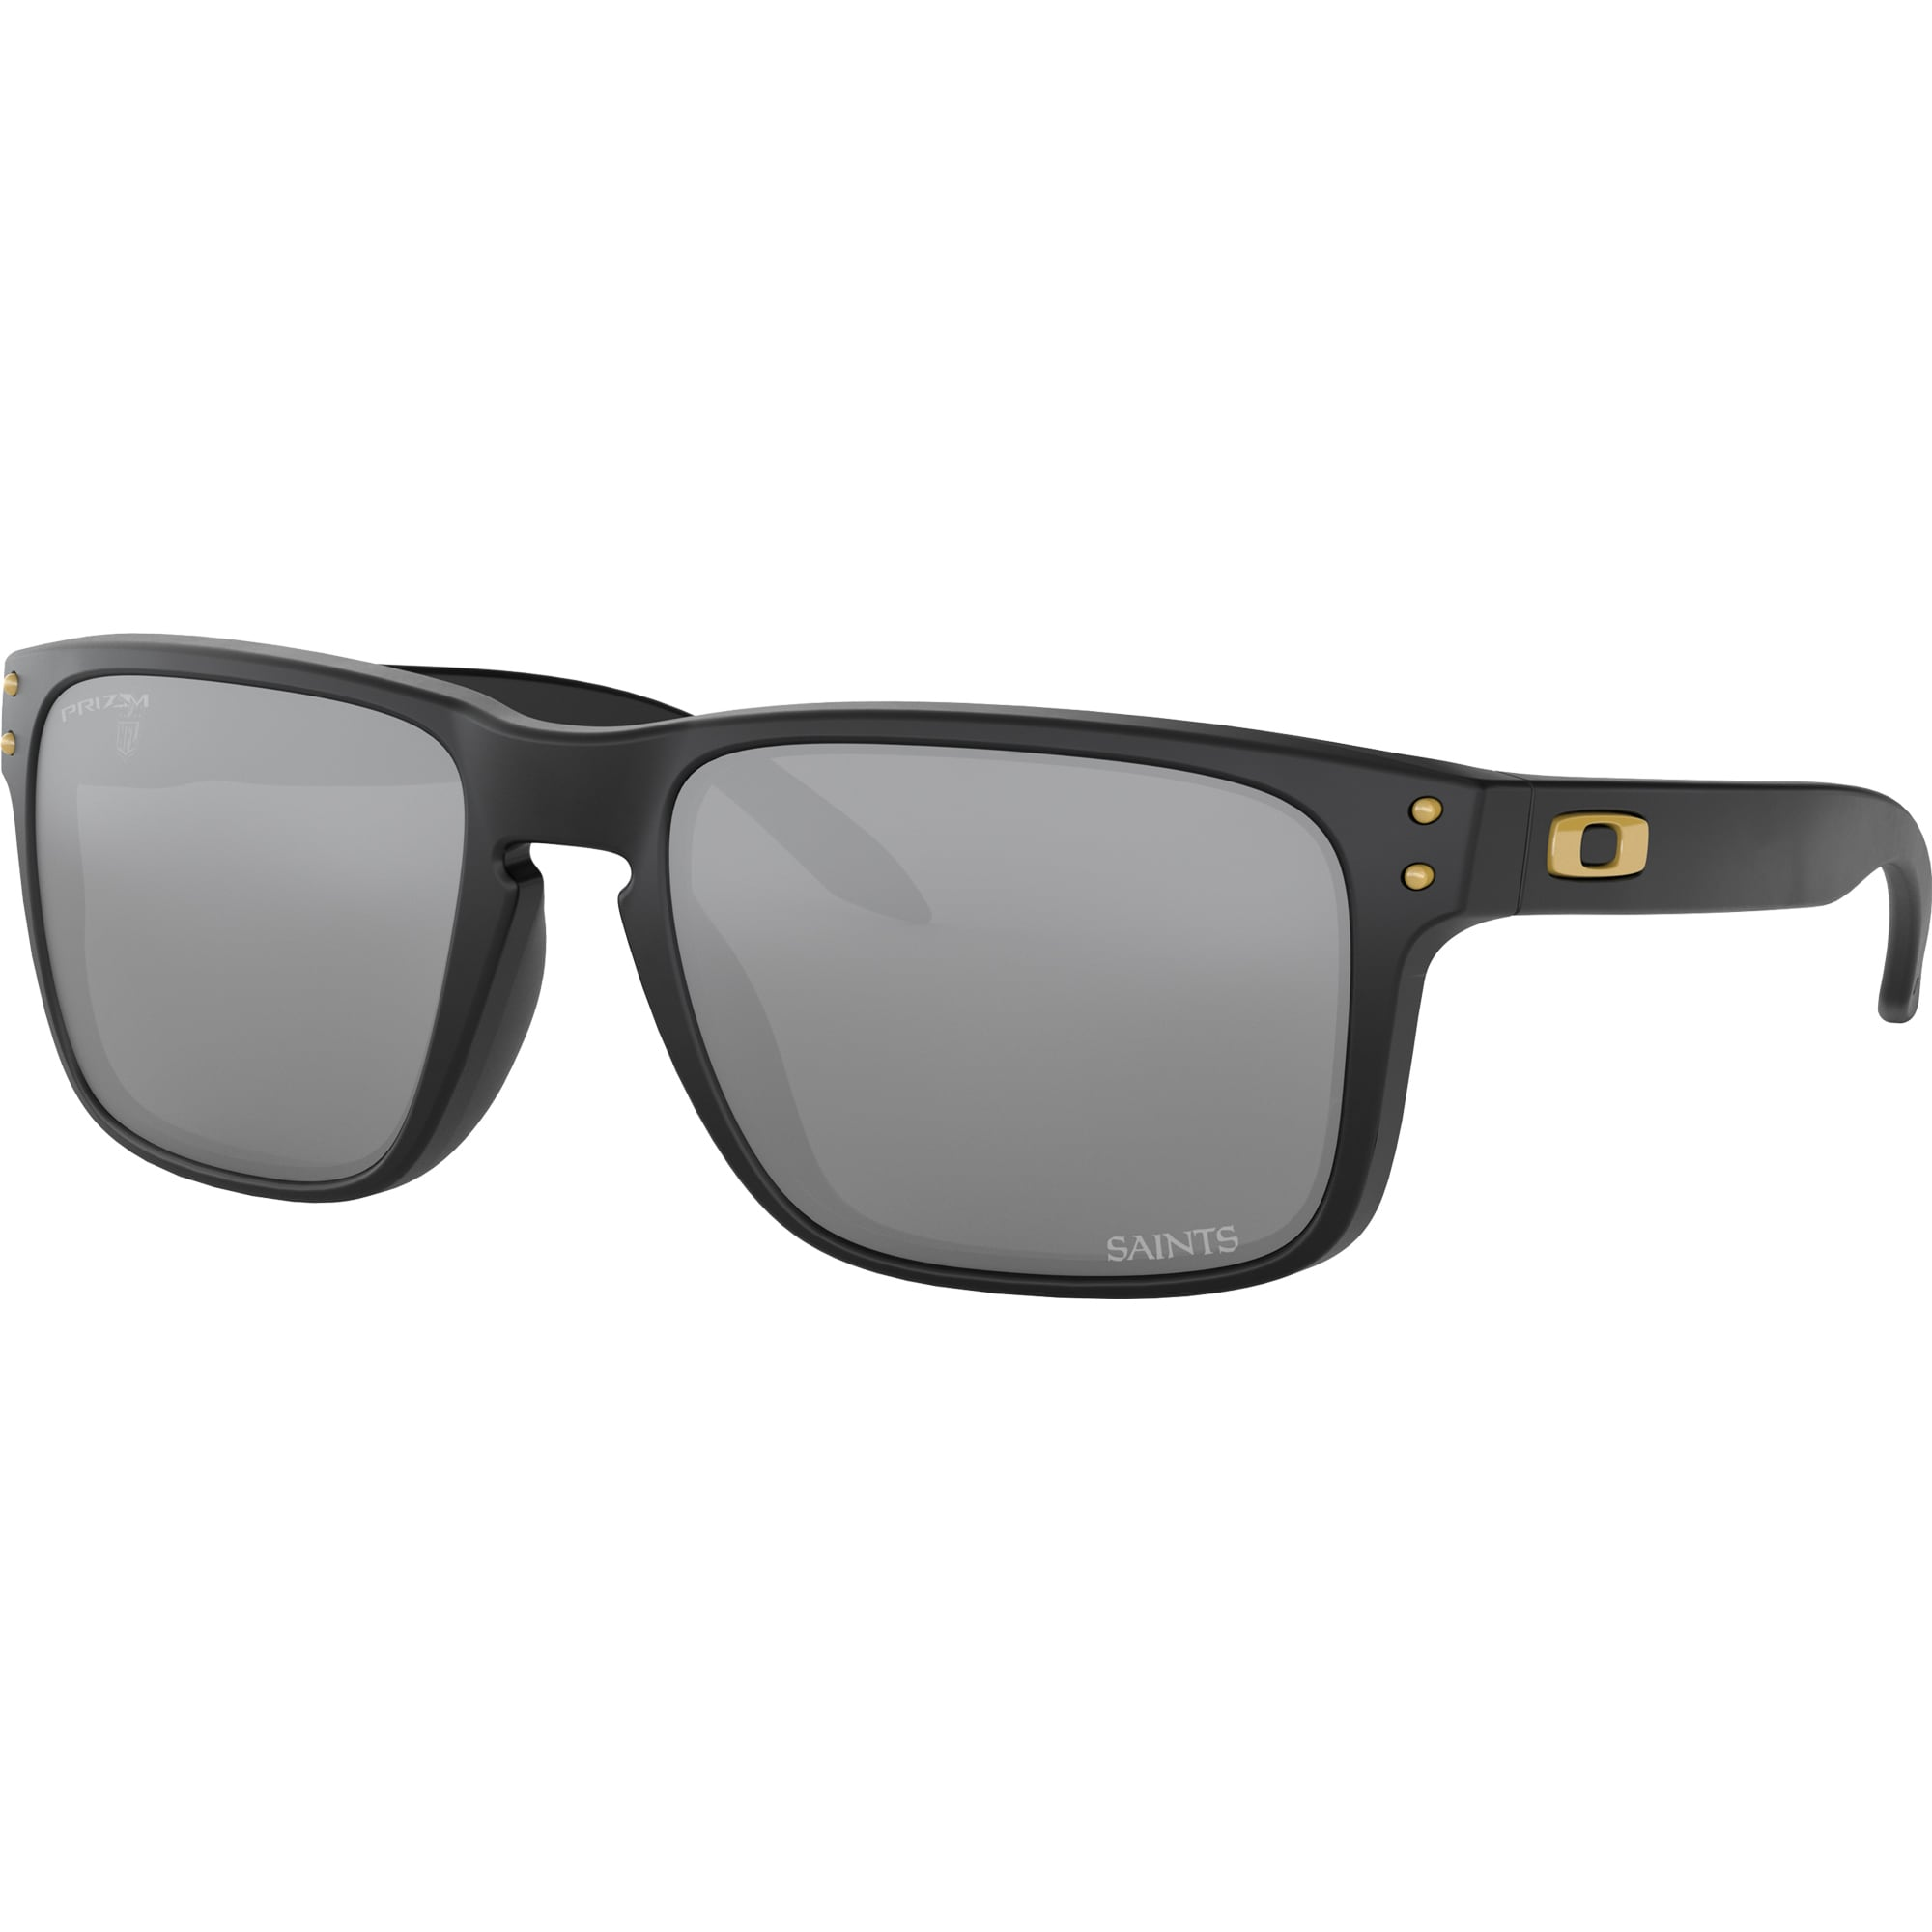 New Orleans Saints Oakley Holbrook Sunglasses